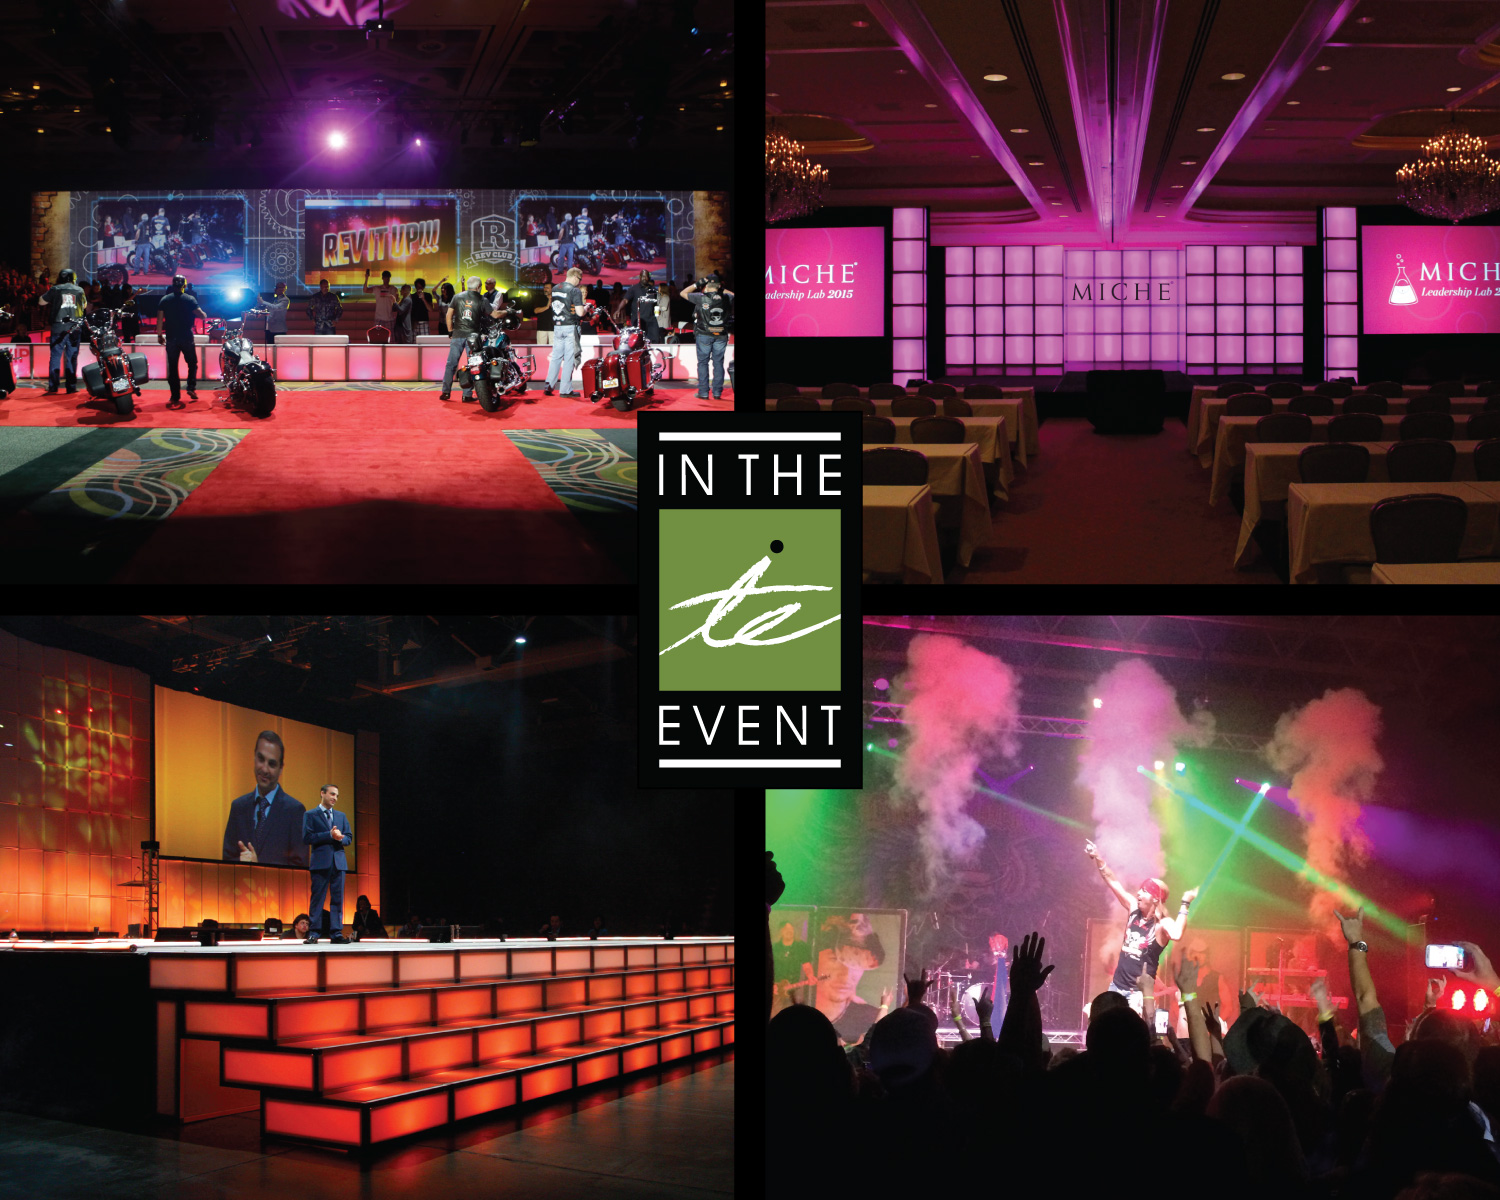 corporate events How To Take The Bored Room Out Of Corporate Events Stage Look Collage